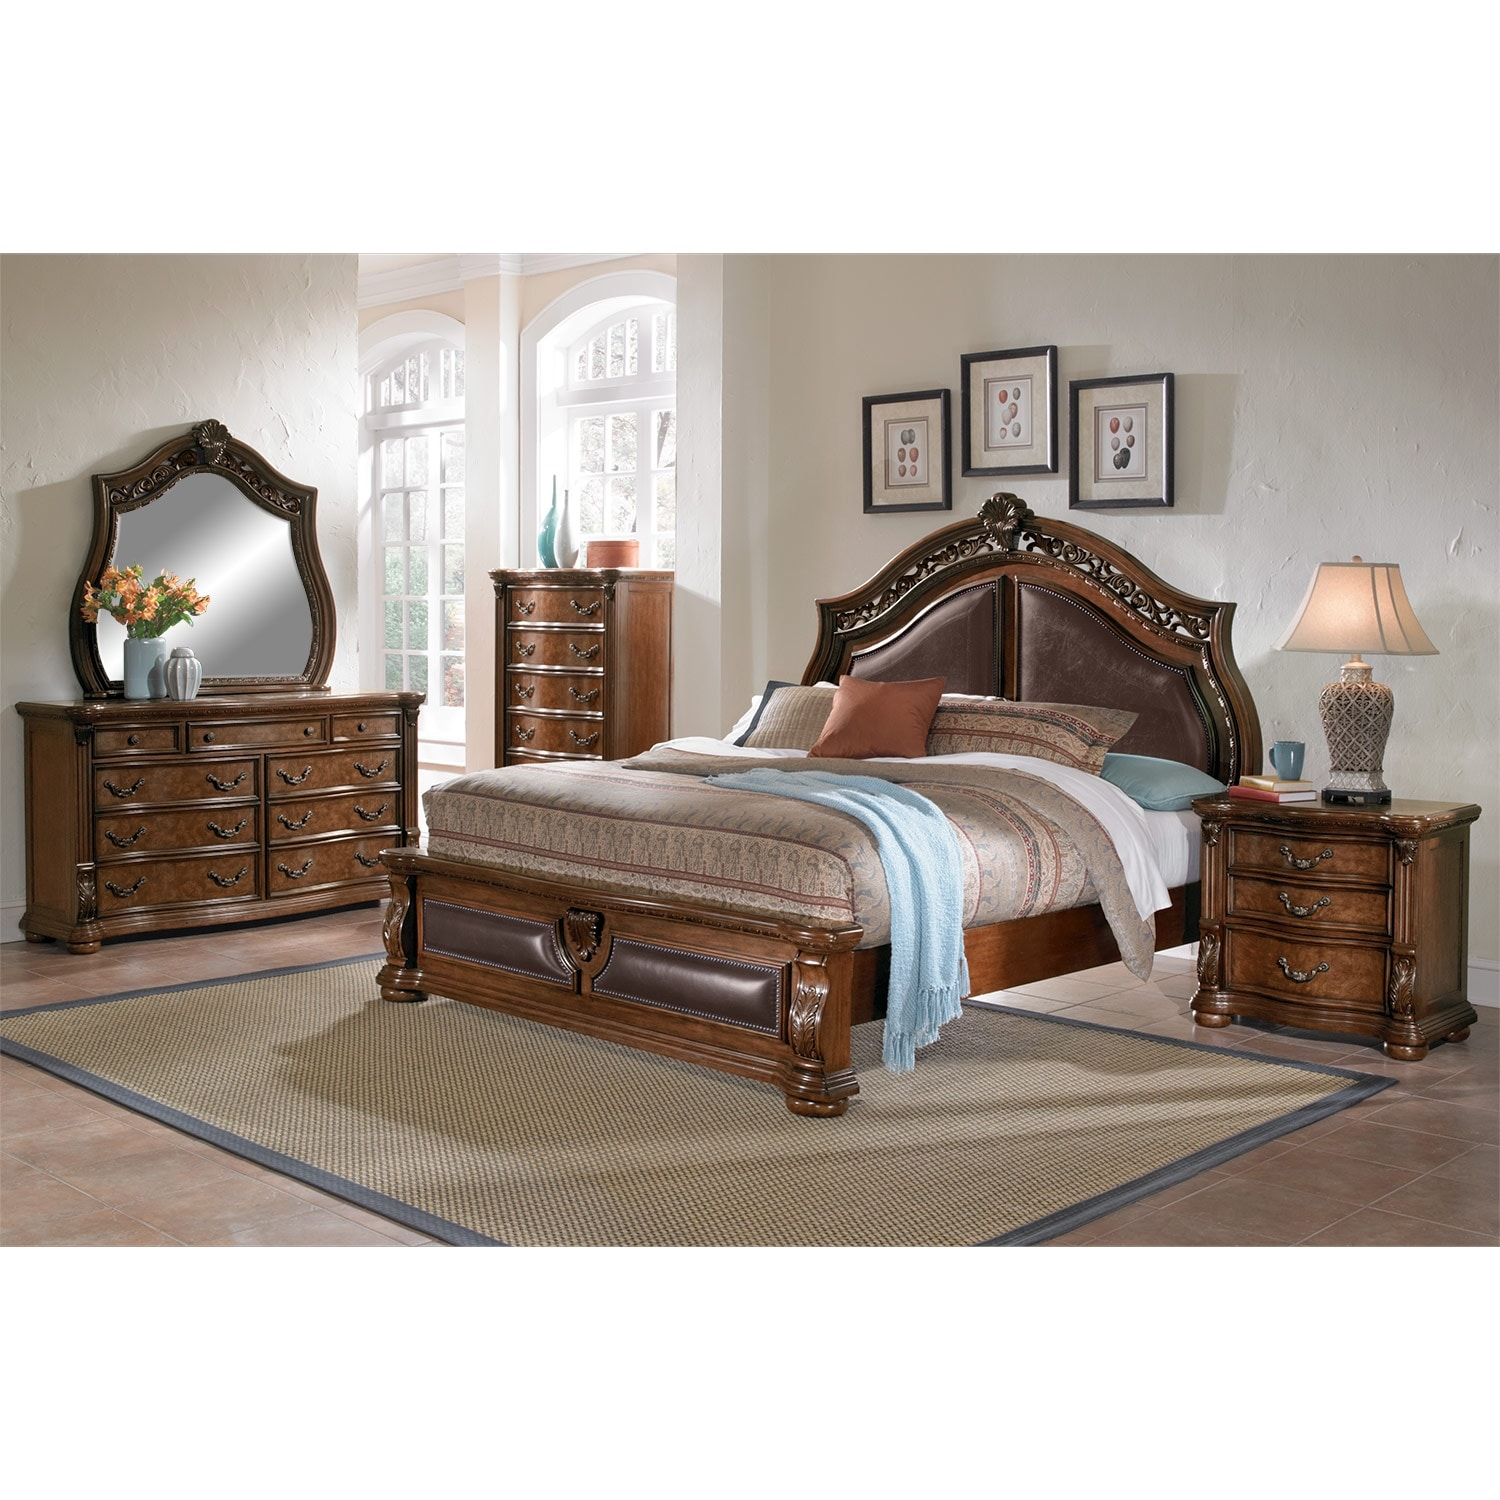 Morocco King Bed Pecan American Signature Furniture